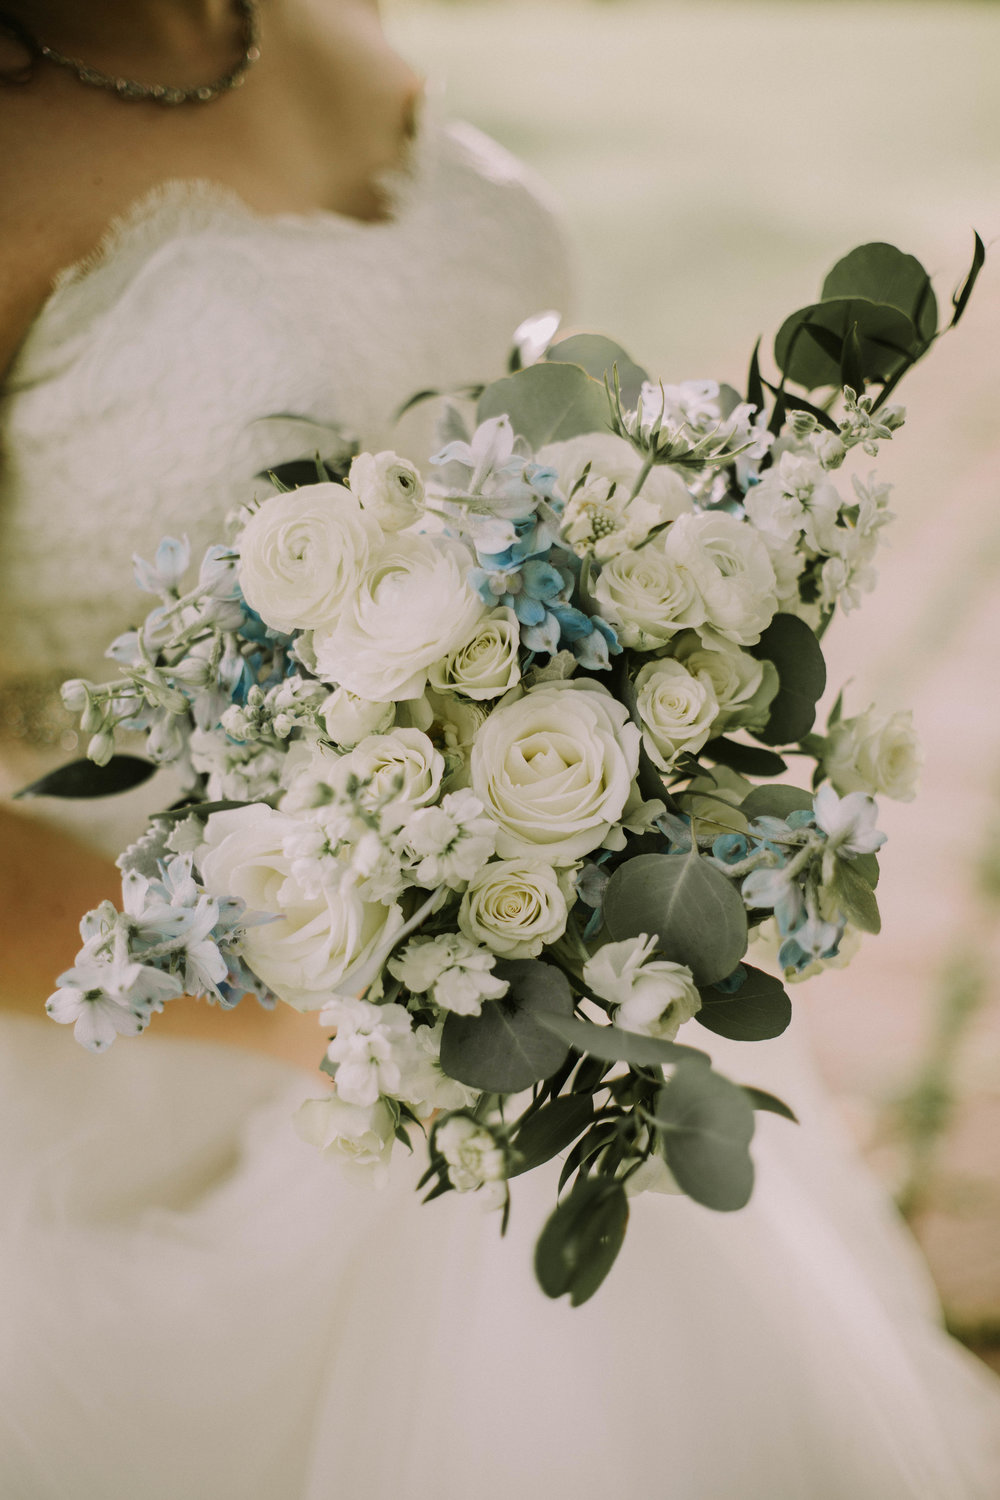 Whtie and Blue Spring Wedding Bouquet